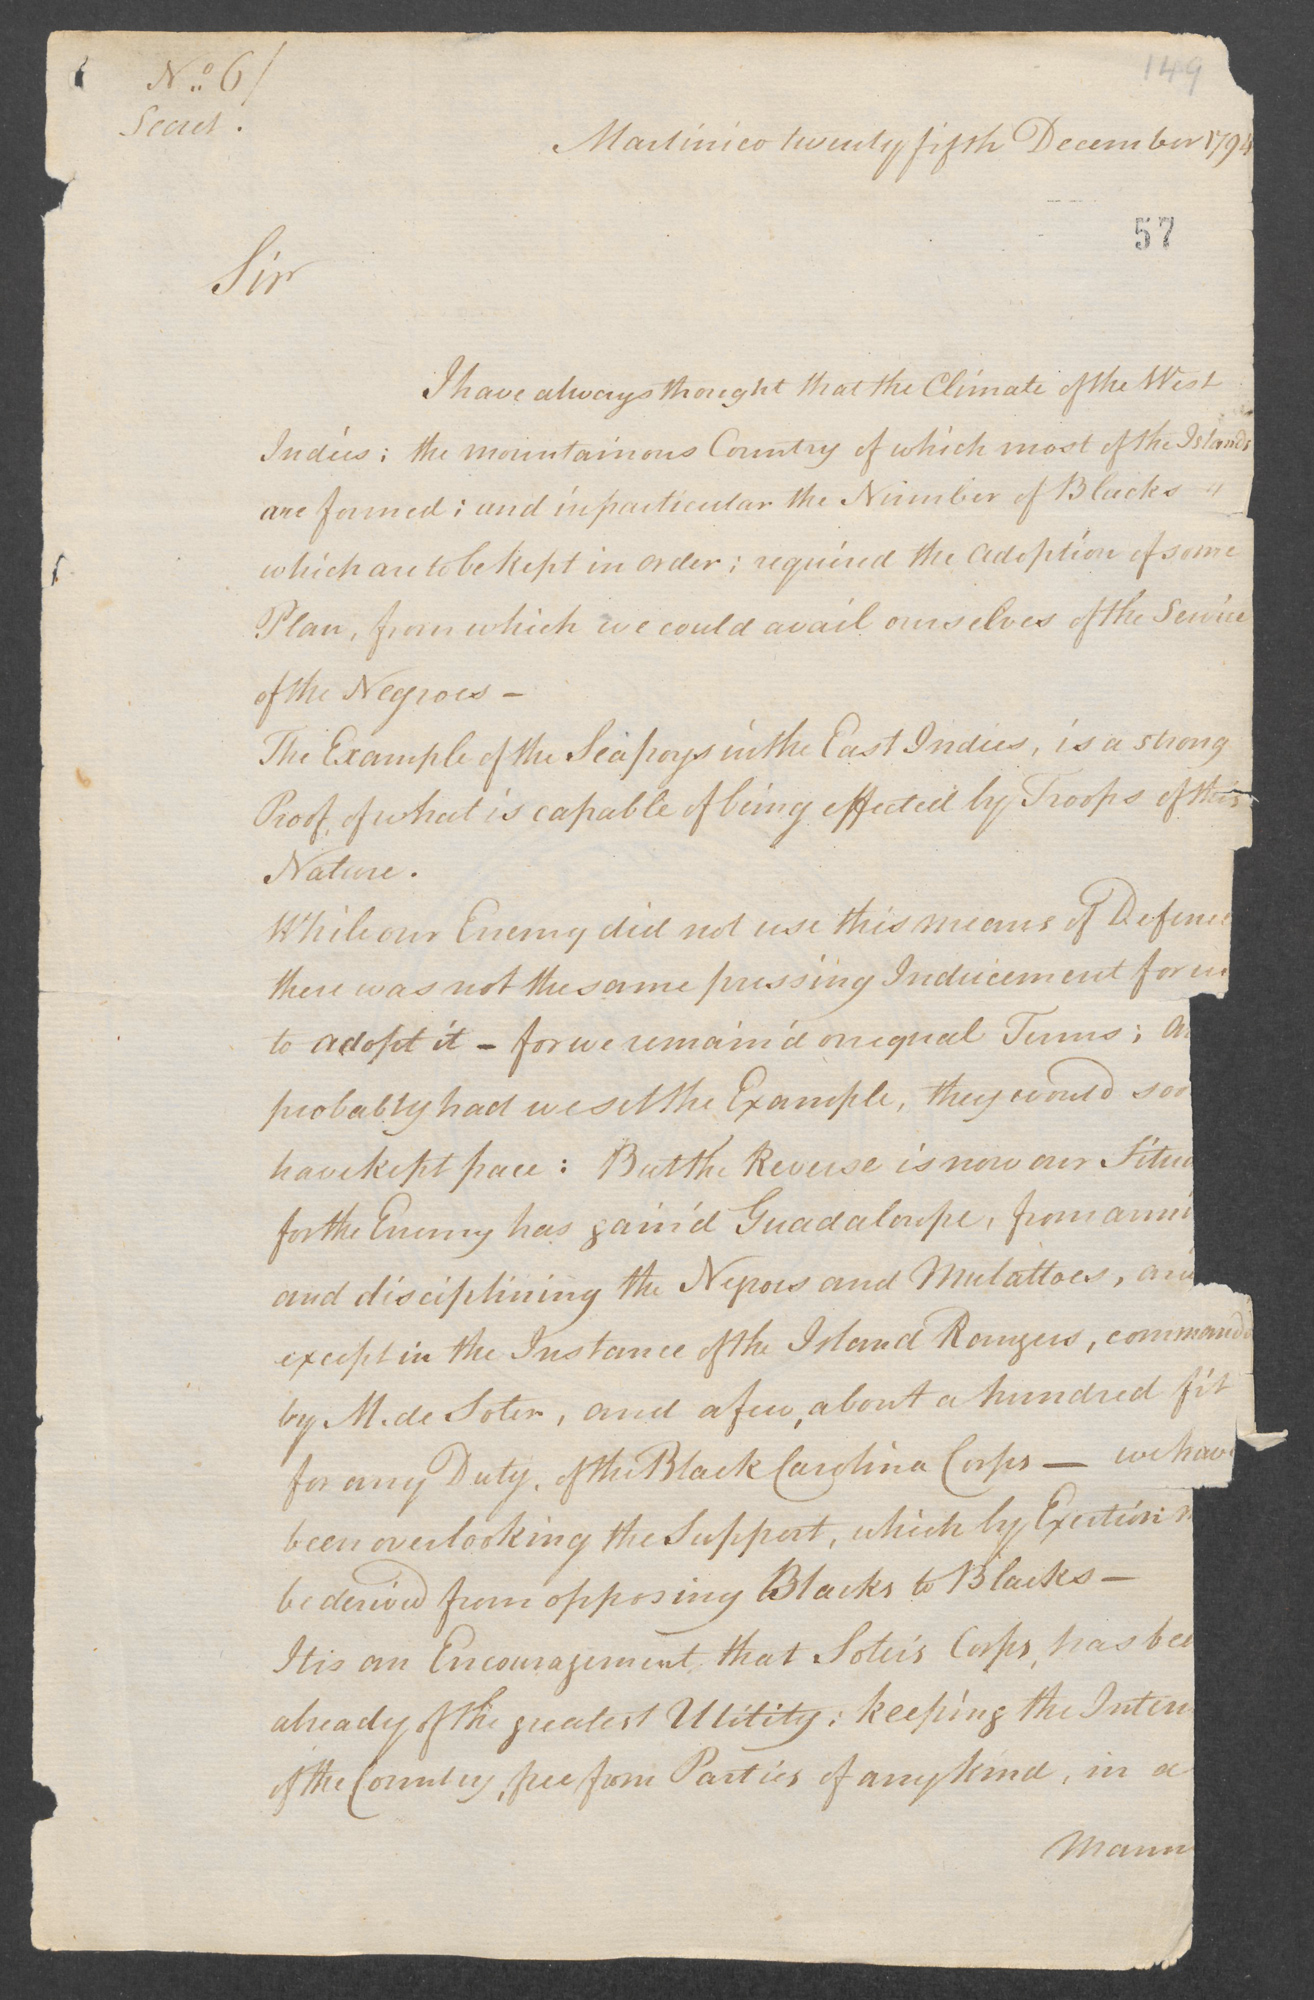 Vaughan to Dundas 'Secret No 6' Martinique Dec 25, 1794